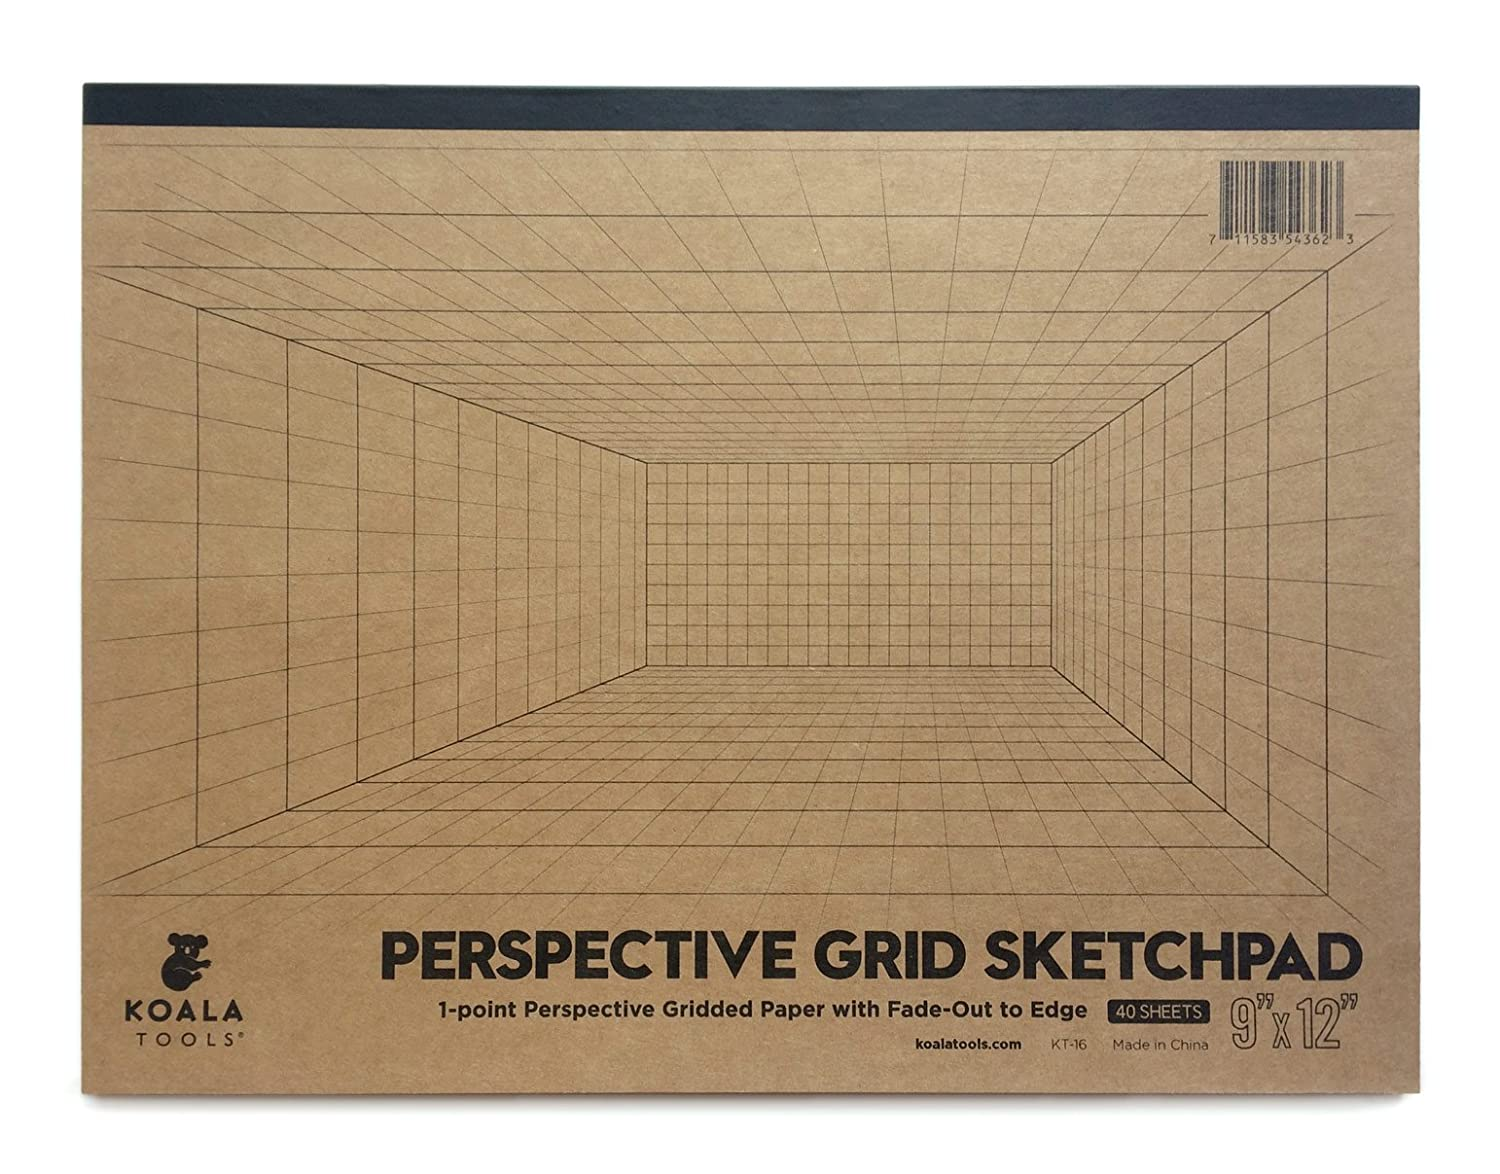 "Koala Tools | Room Grid (1-Point) Large Sketch Pad | 9"" x 12"", 40 pp. - Perspective Grid Graph Paper for Interior Room Design, Industrial, Architectural and 3D Design"